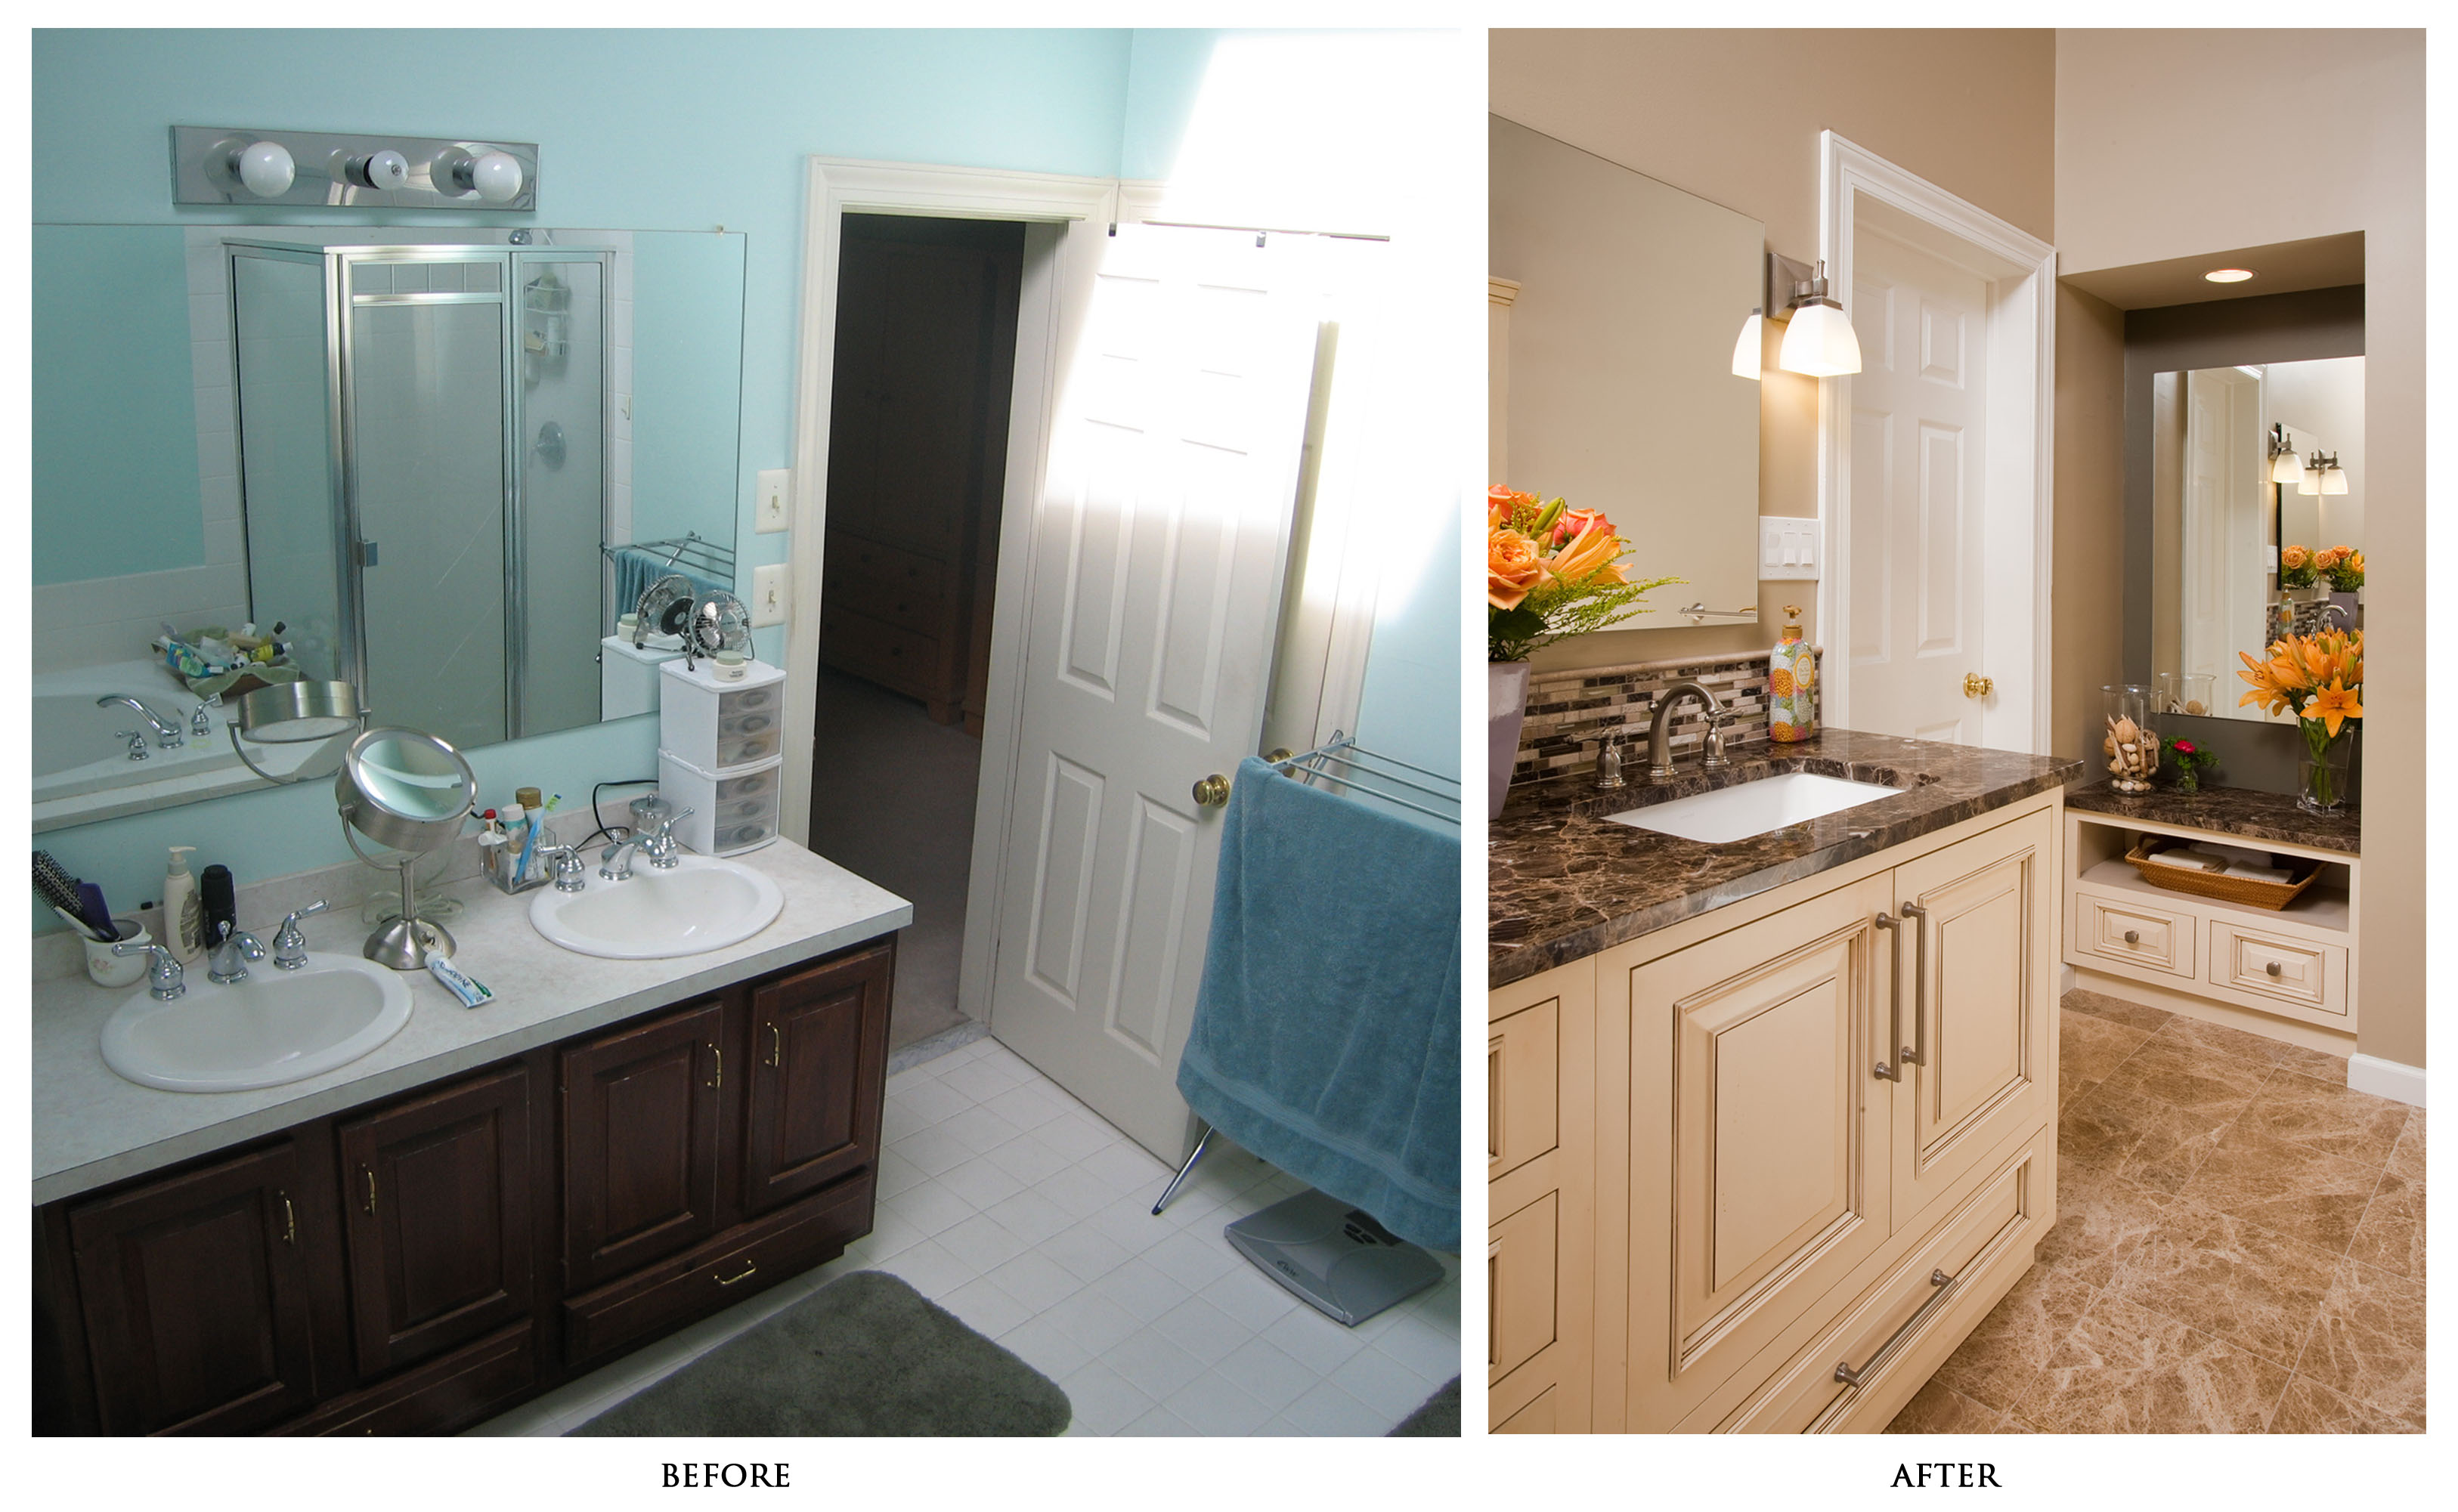 Beforeandafterdiybathroomrenovationideasmarvelousdiy - Remodeling small bathroom ideas before and after